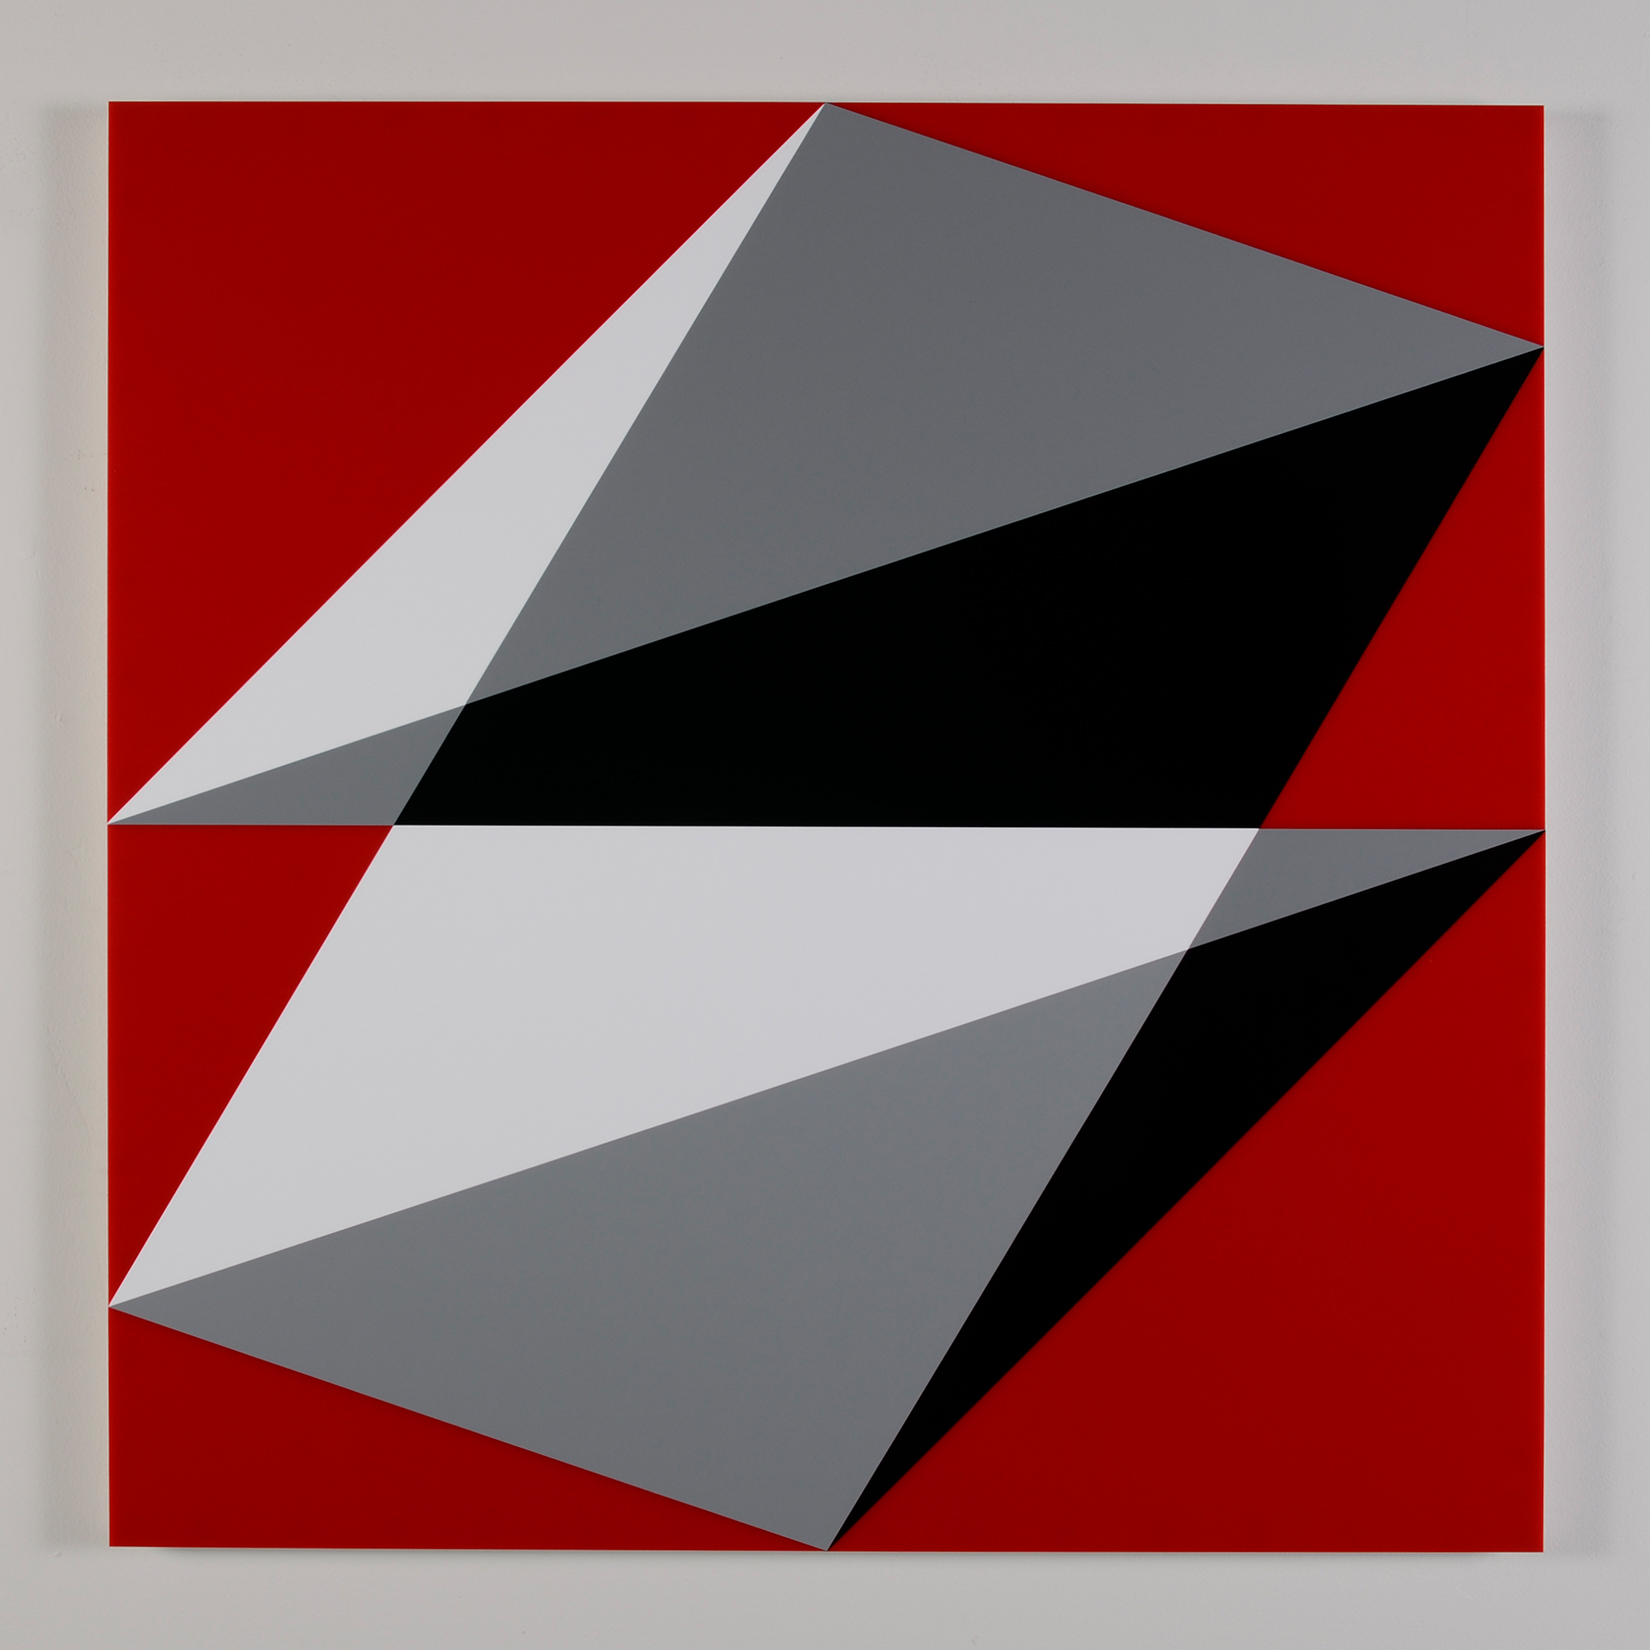 "Composition in 3015 White, 3001 Gray, 2026 Black and 2793 Red  Colored Plexiglas mounted on panel  37.5"" x 37.5"" 2015"